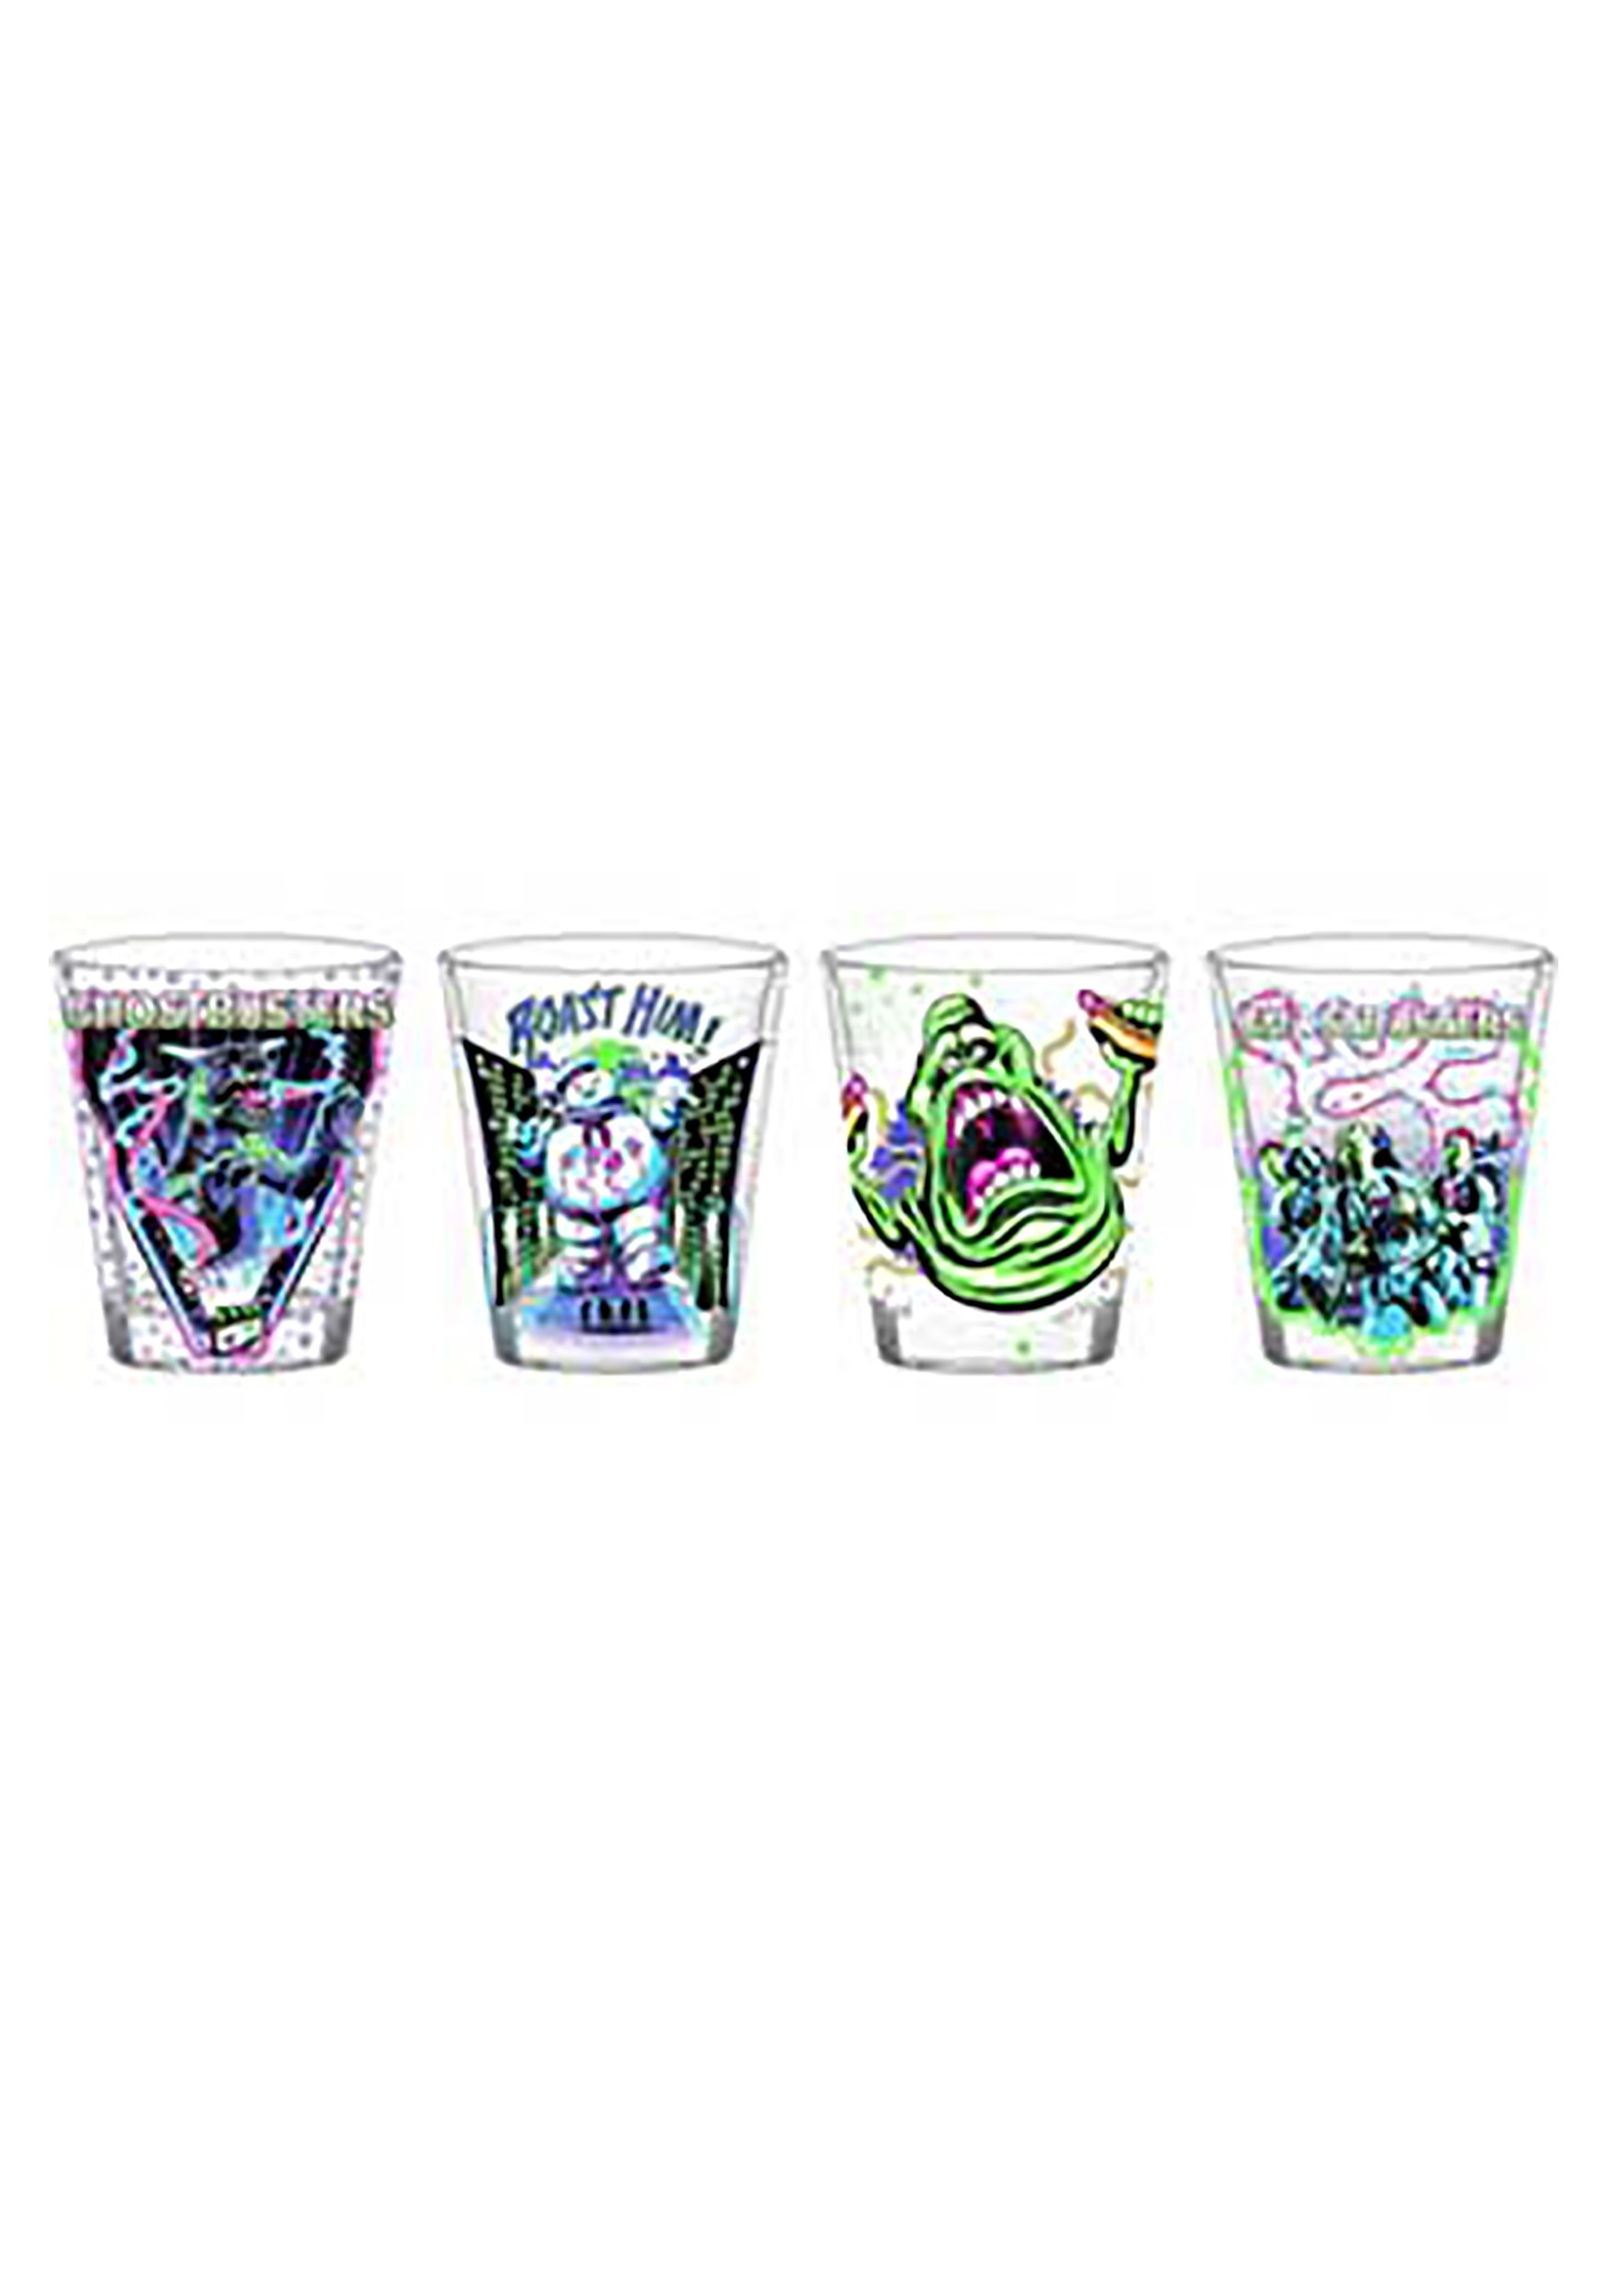 Ghostbusters Neon Shot Glass Sets - 4 Pc Clear Glass